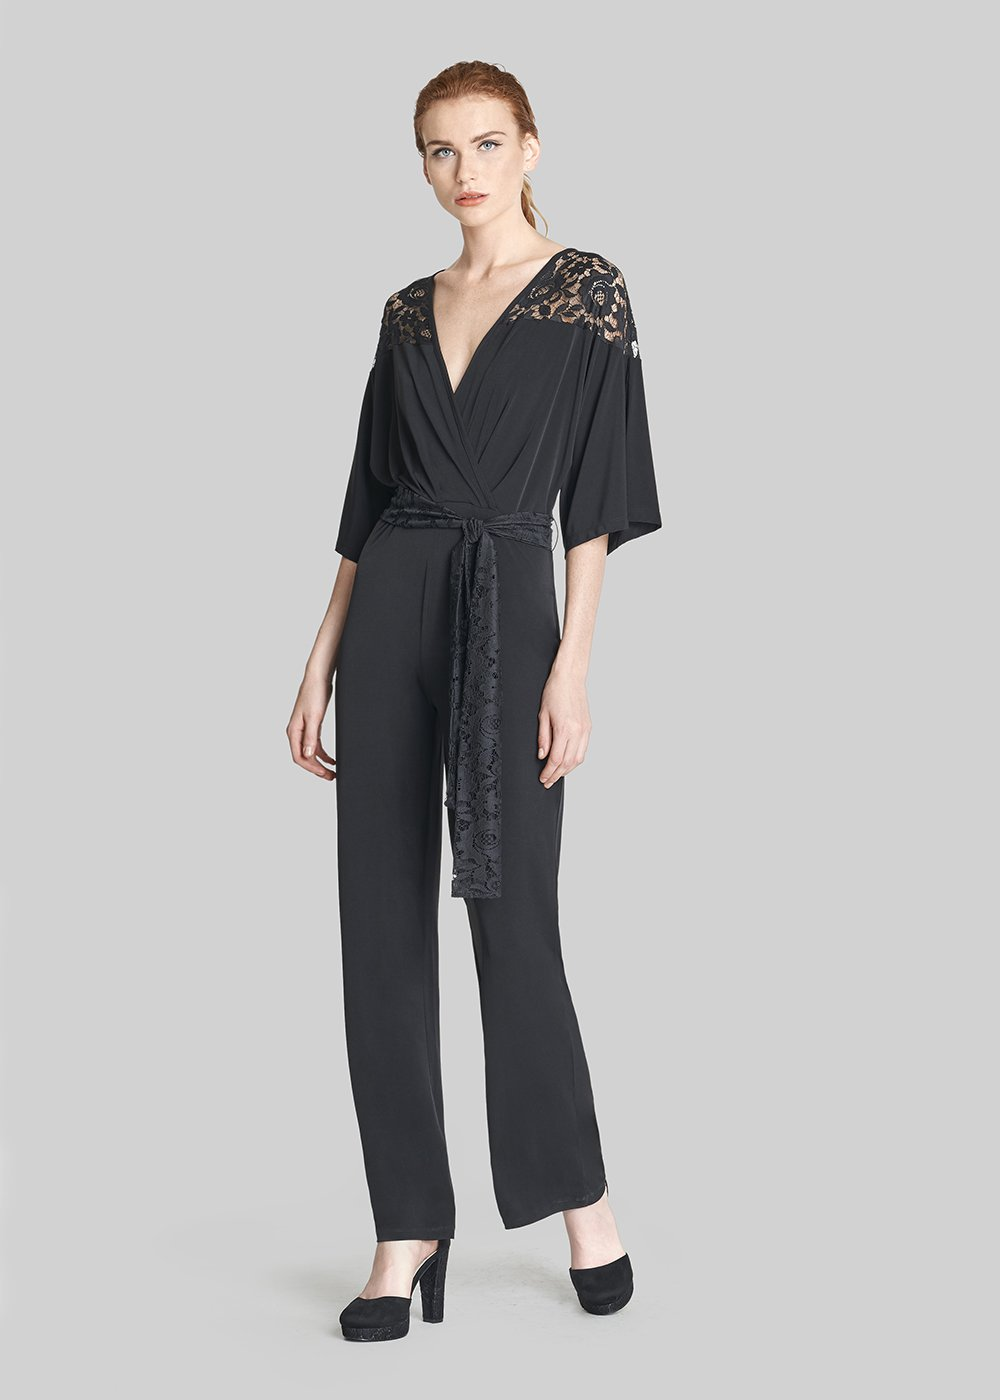 Taiger jersey jumpsuit with 3/4 sleeves - Black